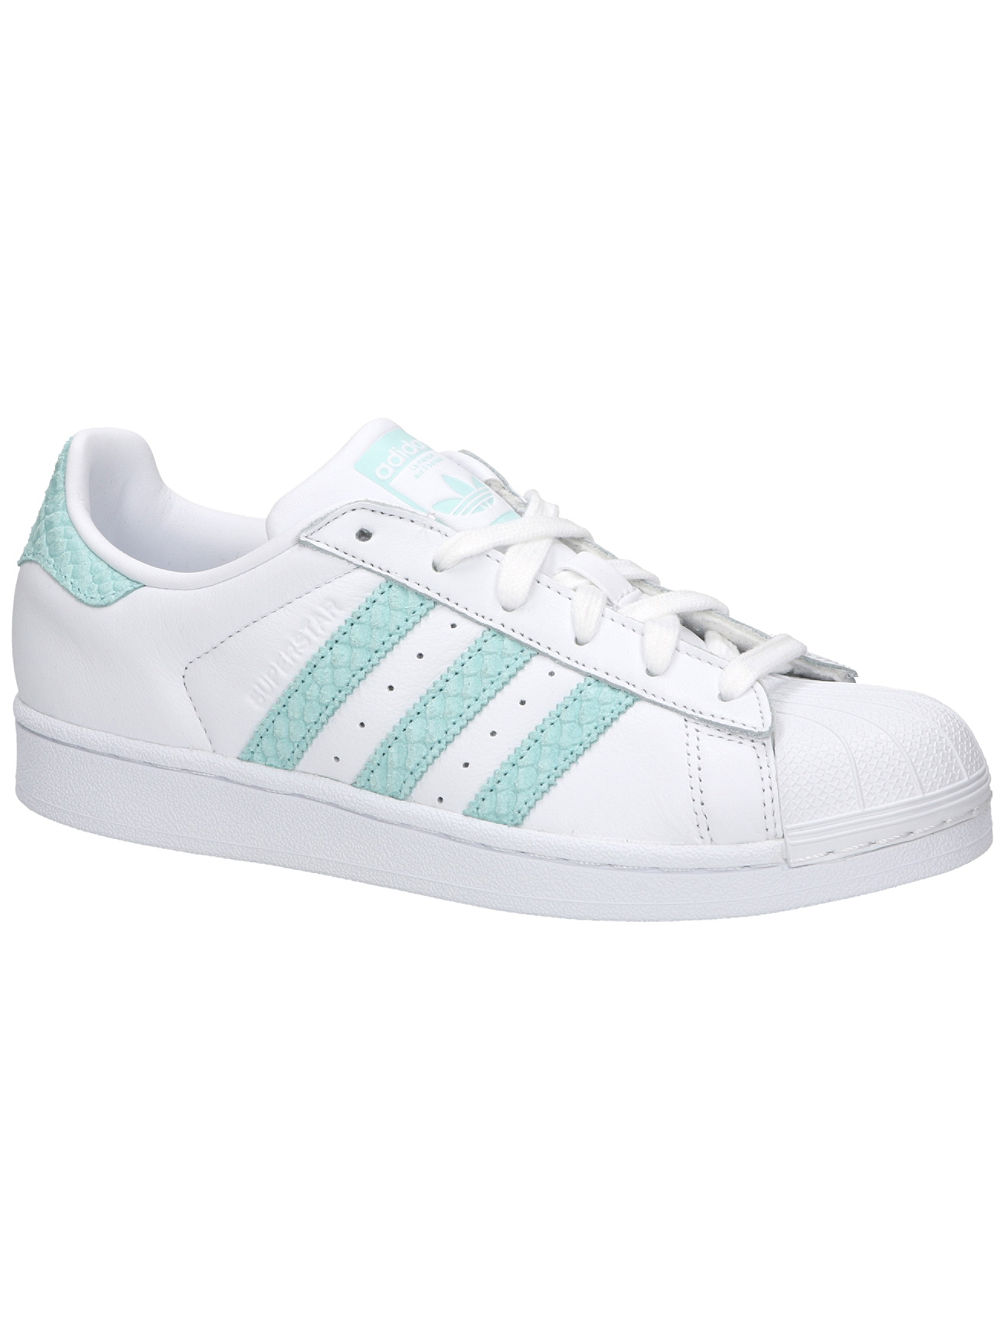 a00d8d200a8 Buy adidas Originals Superstar Sneakers online at Blue Tomato